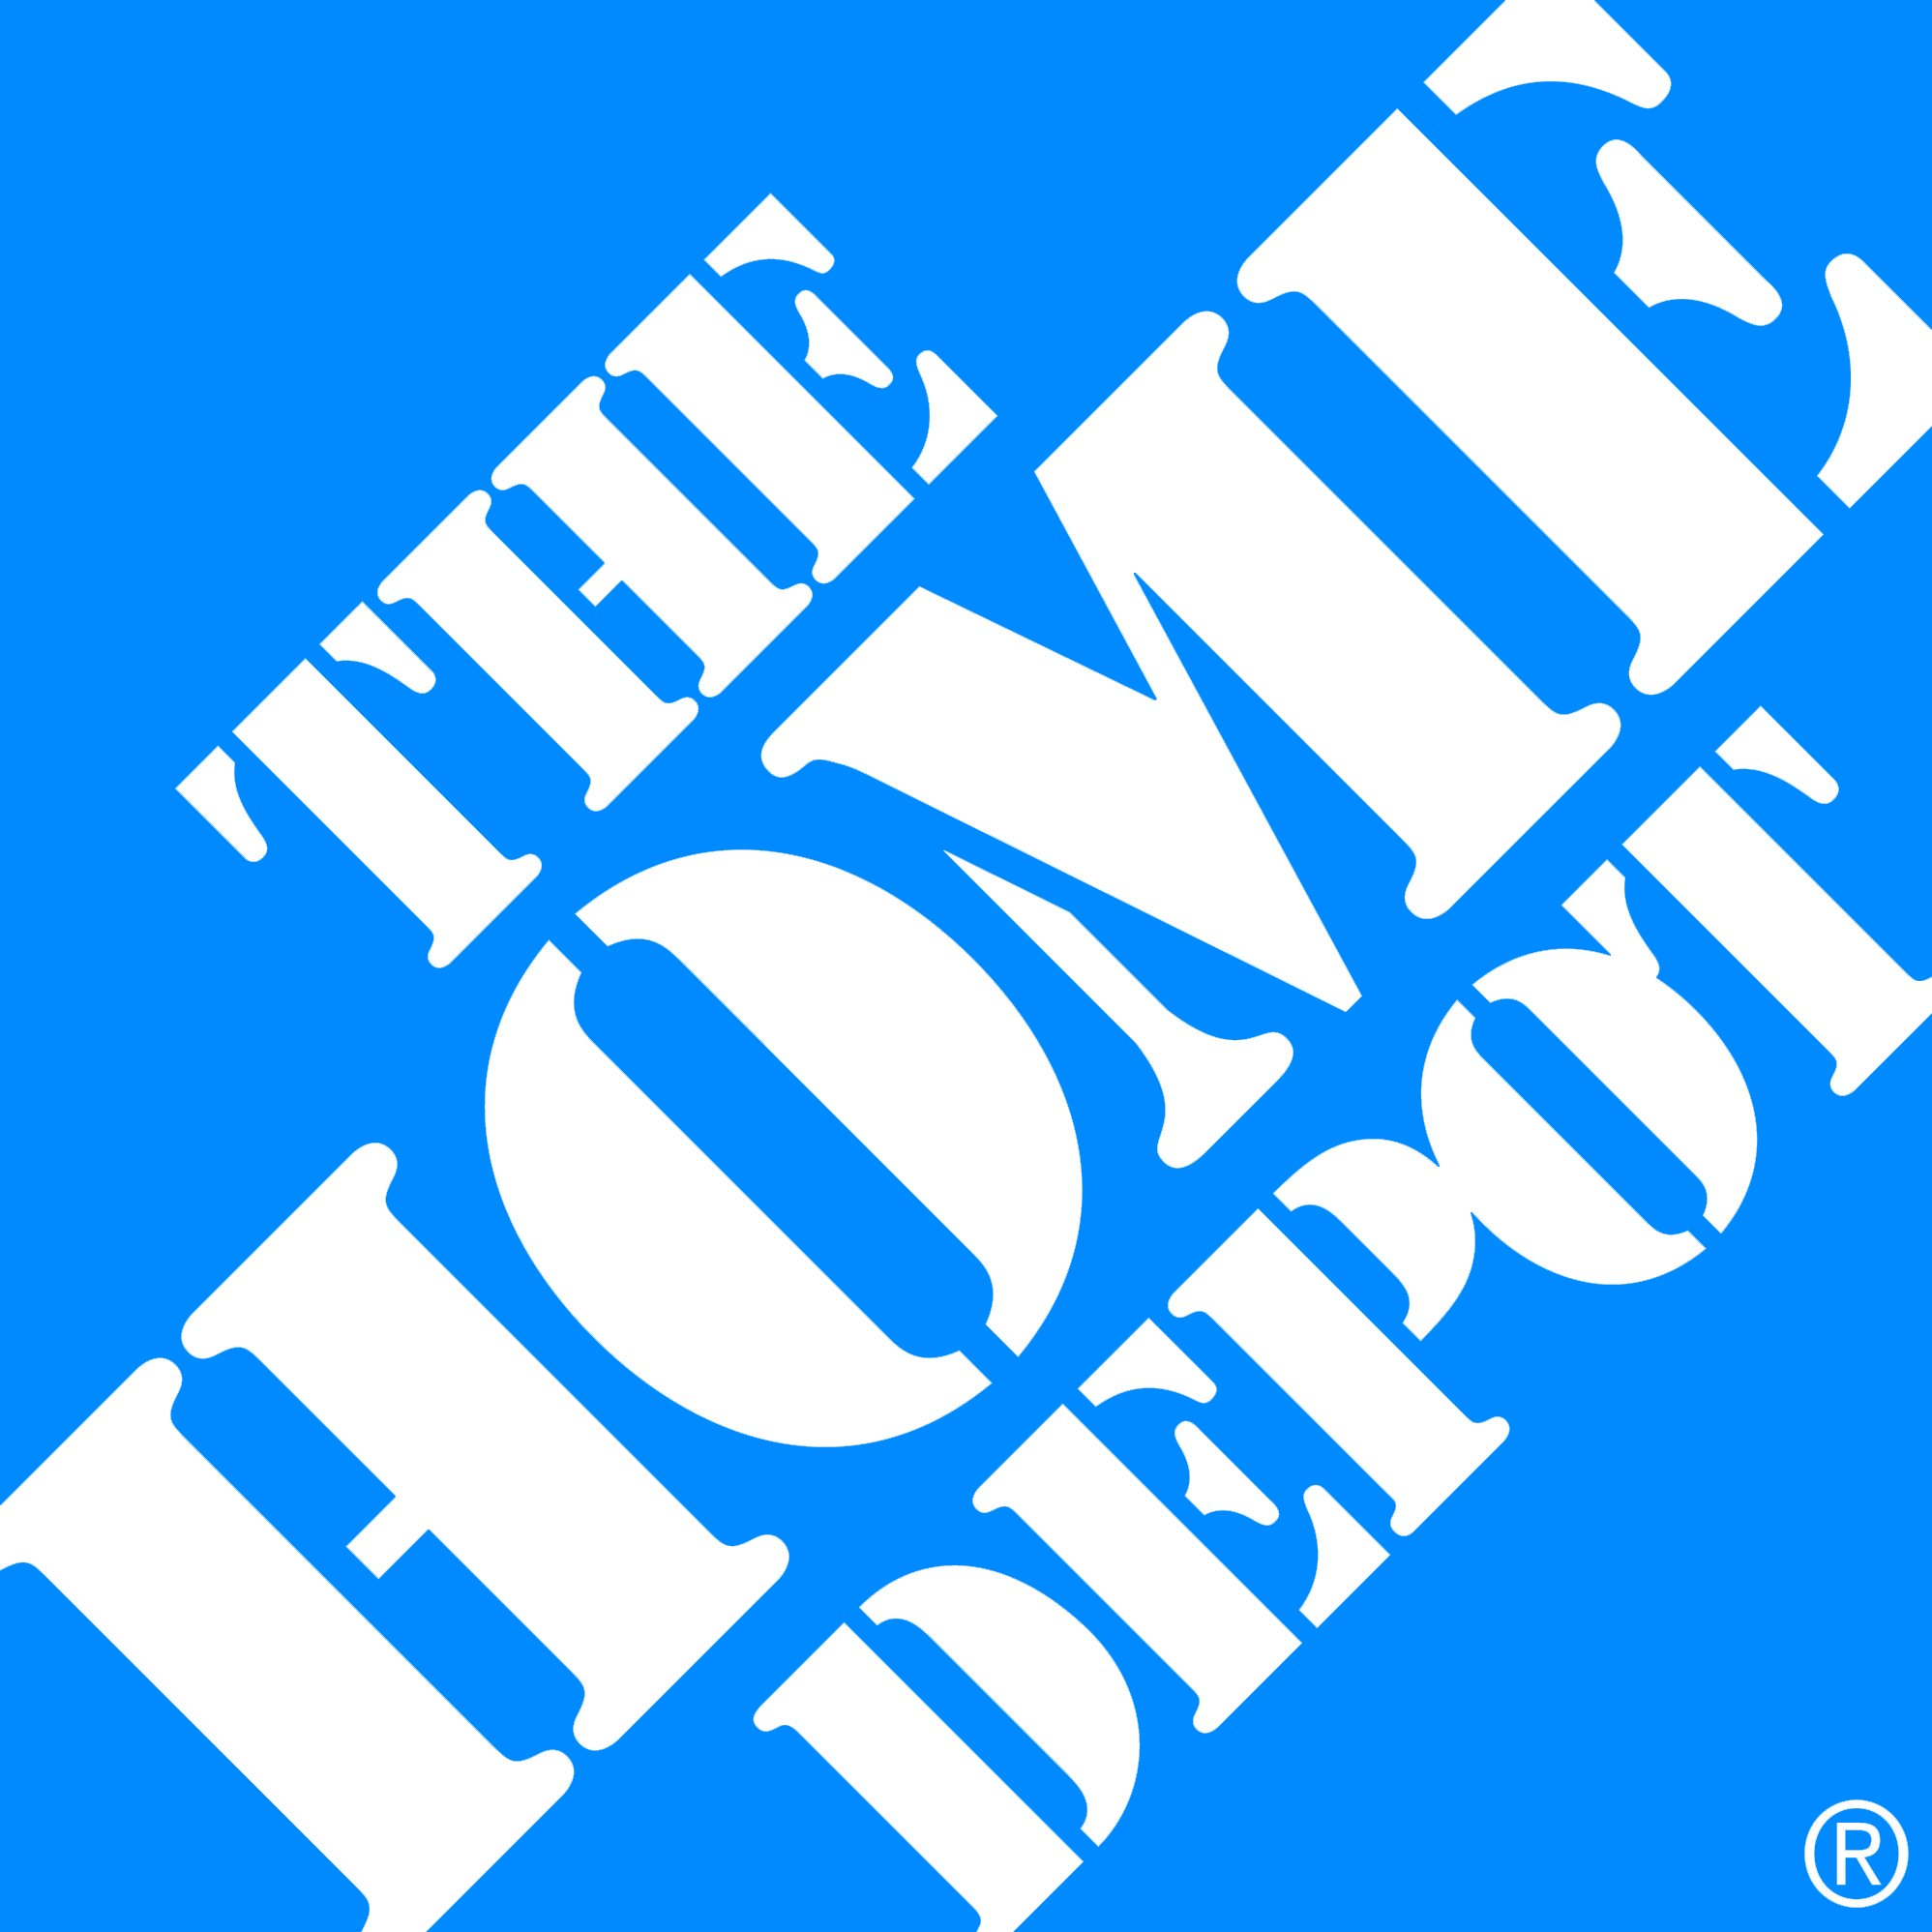 Home Depot Logo Home Depot Symbol Meaning History And Evolution - The home depot logo